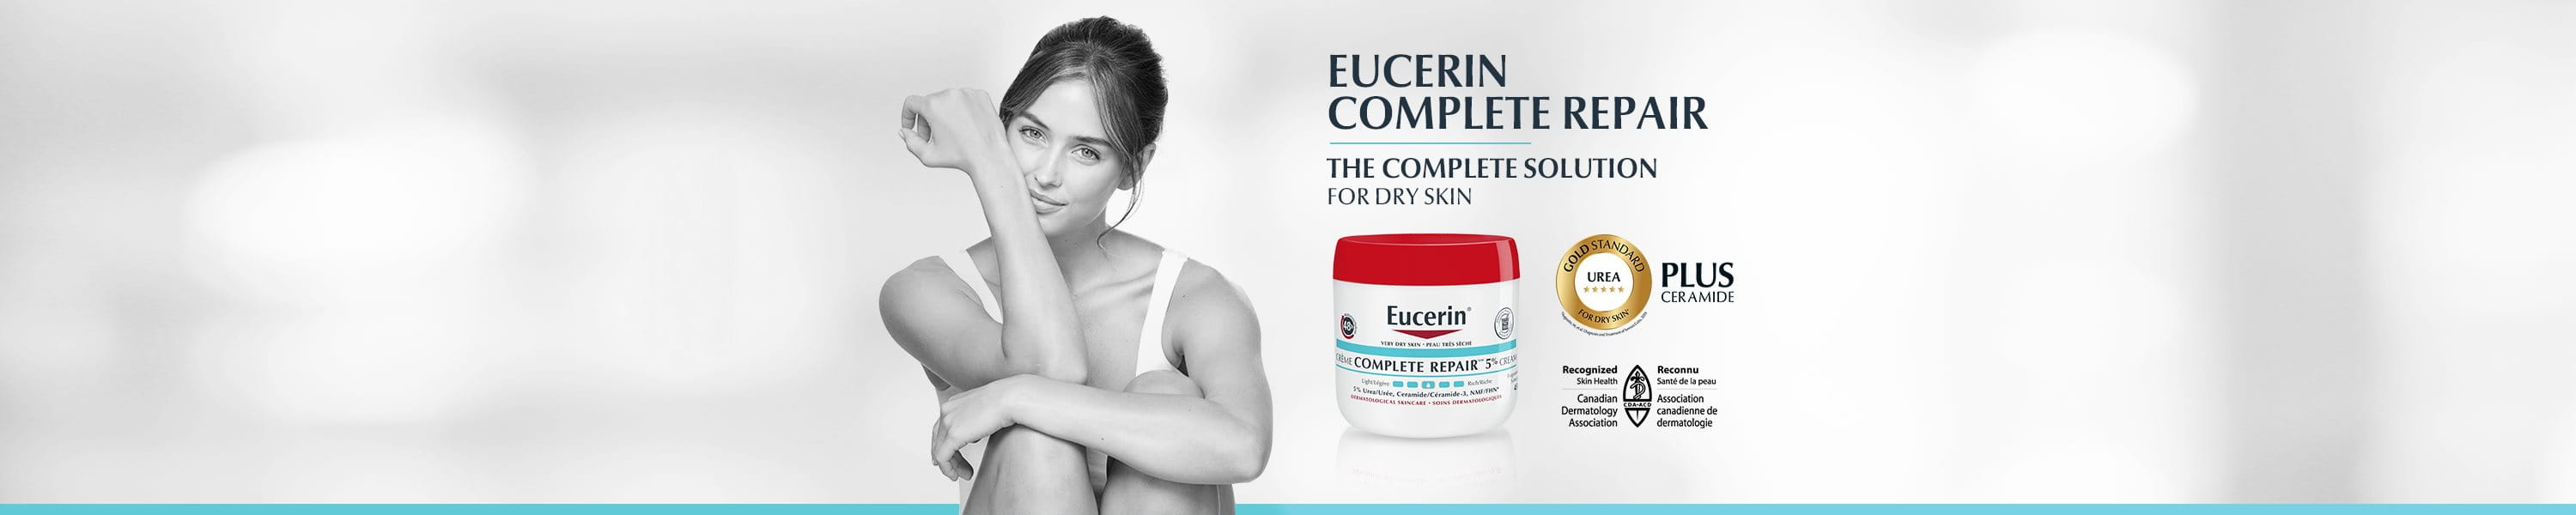 Eucerin Complete Repair - the complete solution for dry skin